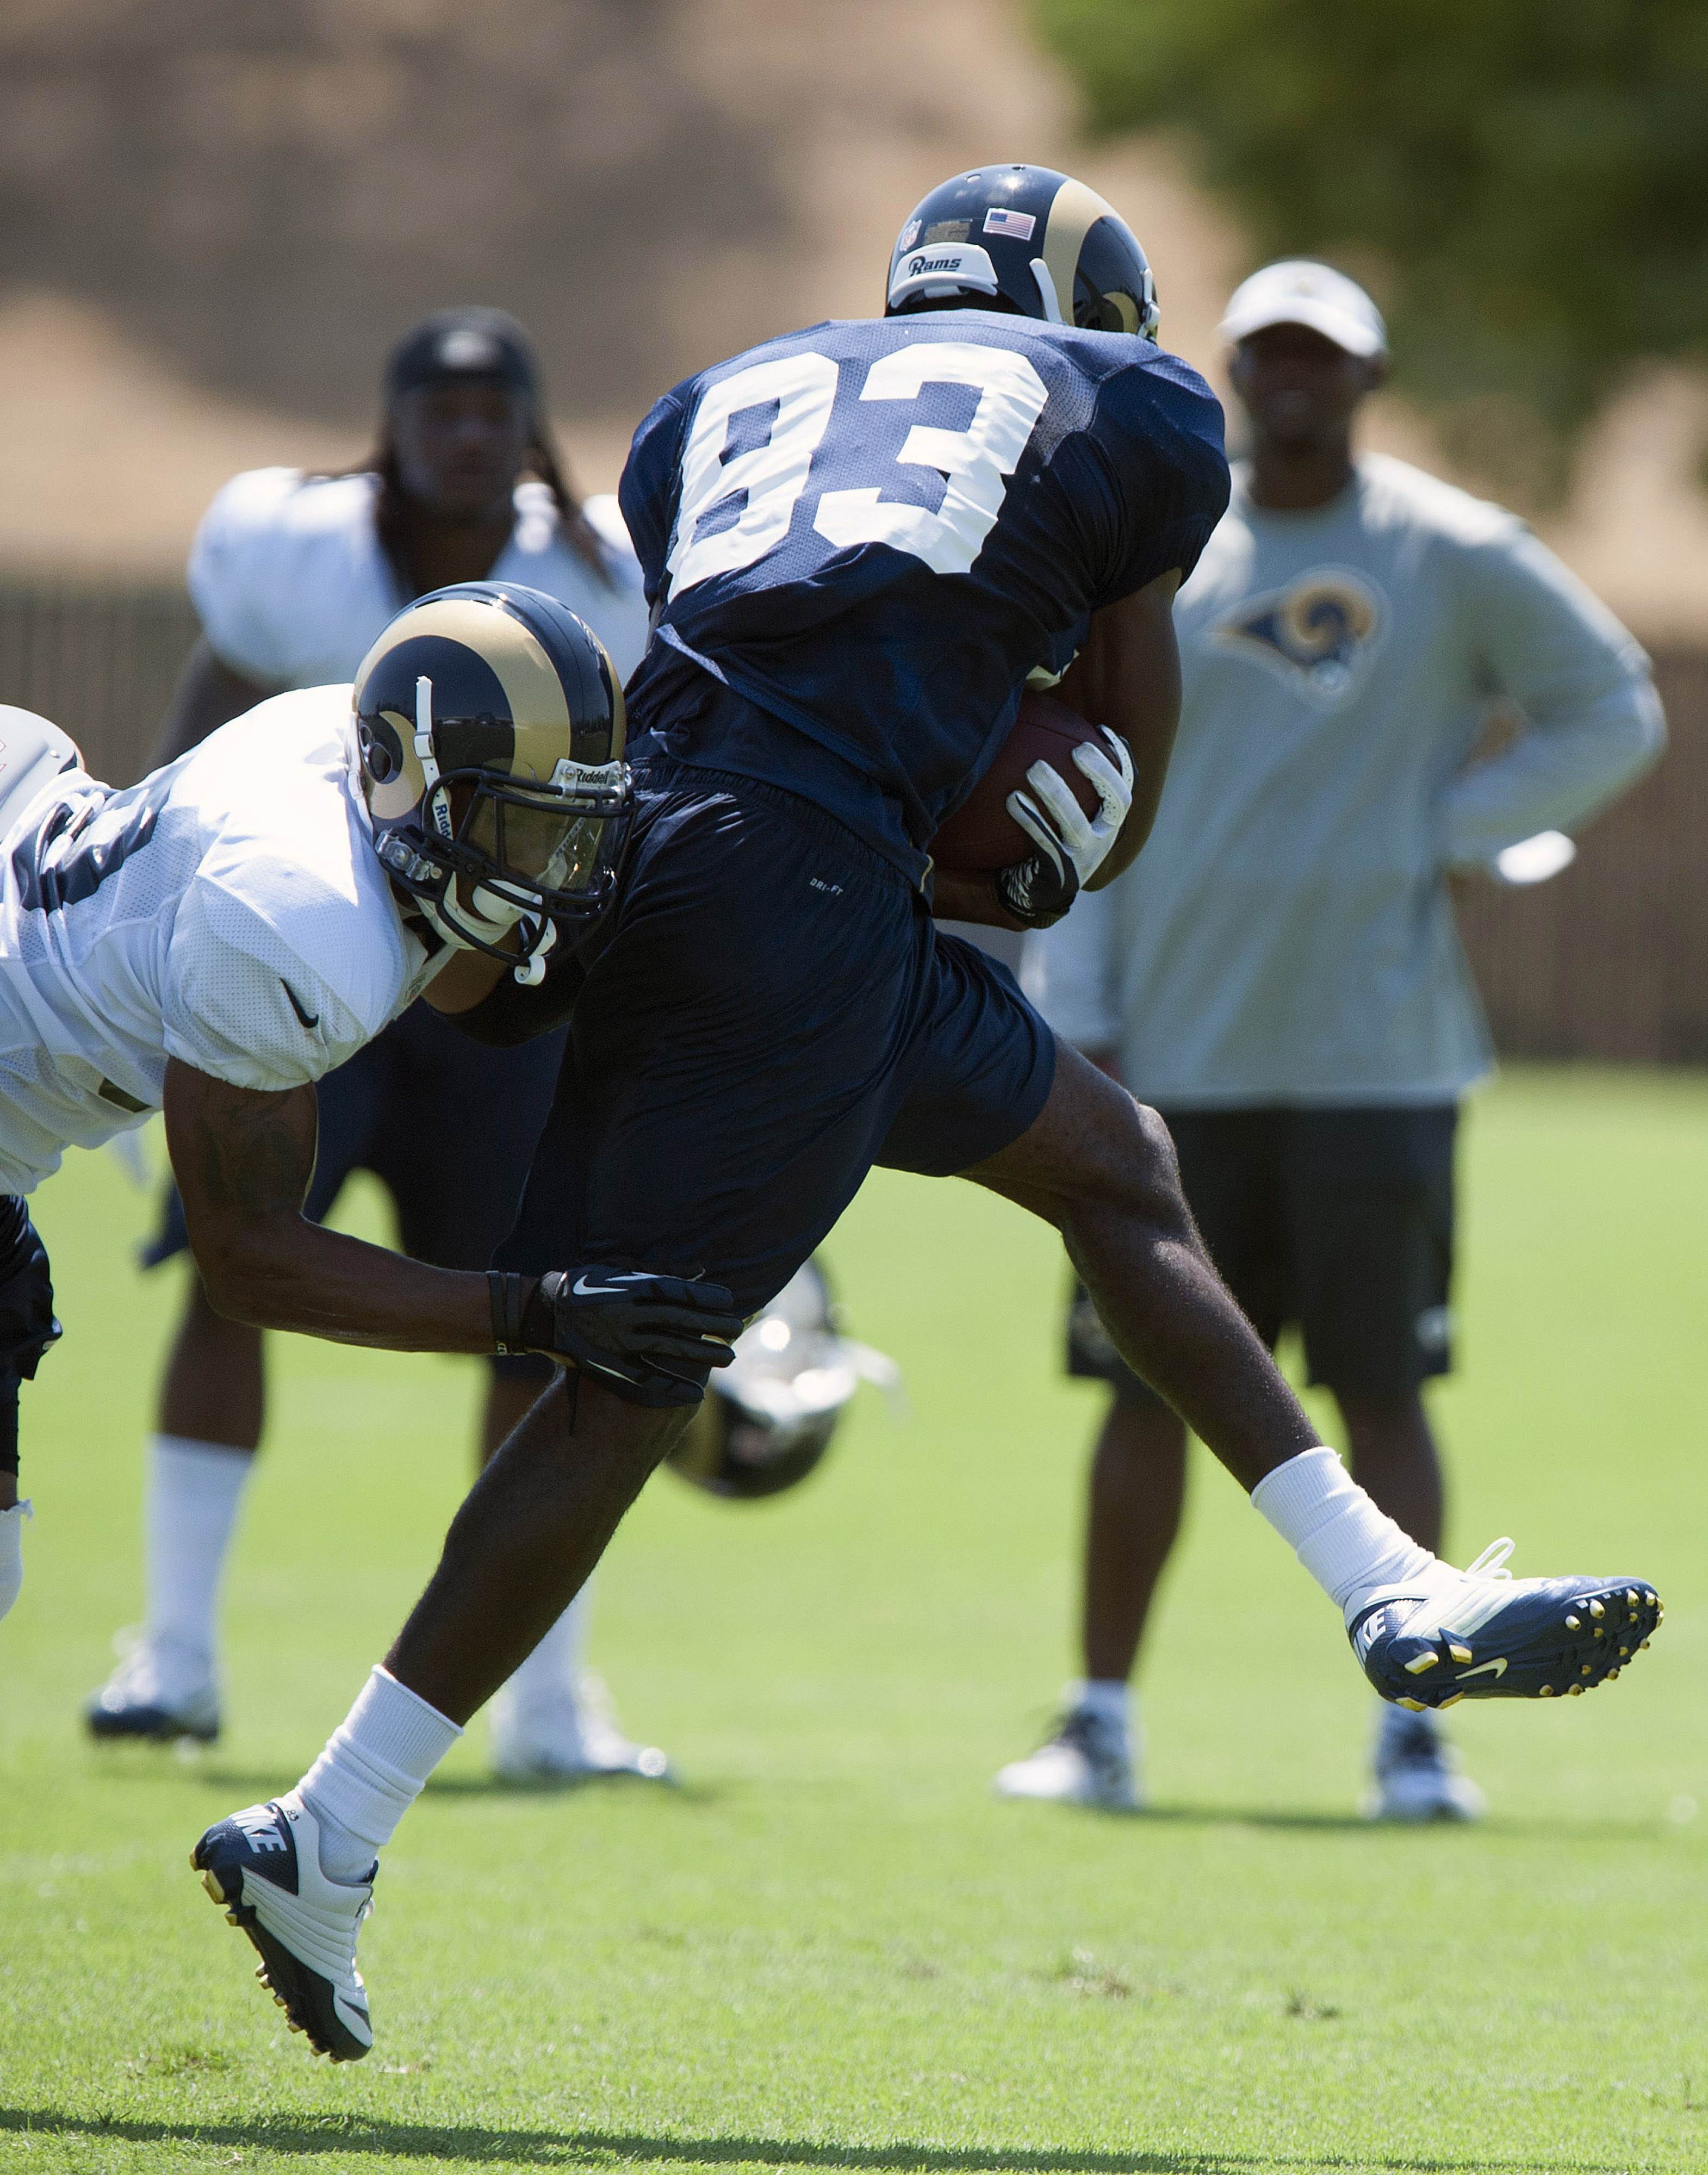 July 27, 2012; St. Louis, MO, USA; St. Louis Rams wide receiver Brian Quick (83) carries the ball as safety Rodney McLeod (38) defends during training camp at ContinuityX Training Center. Mandatory Credit: Jeff Curry-US PRESSWIRE